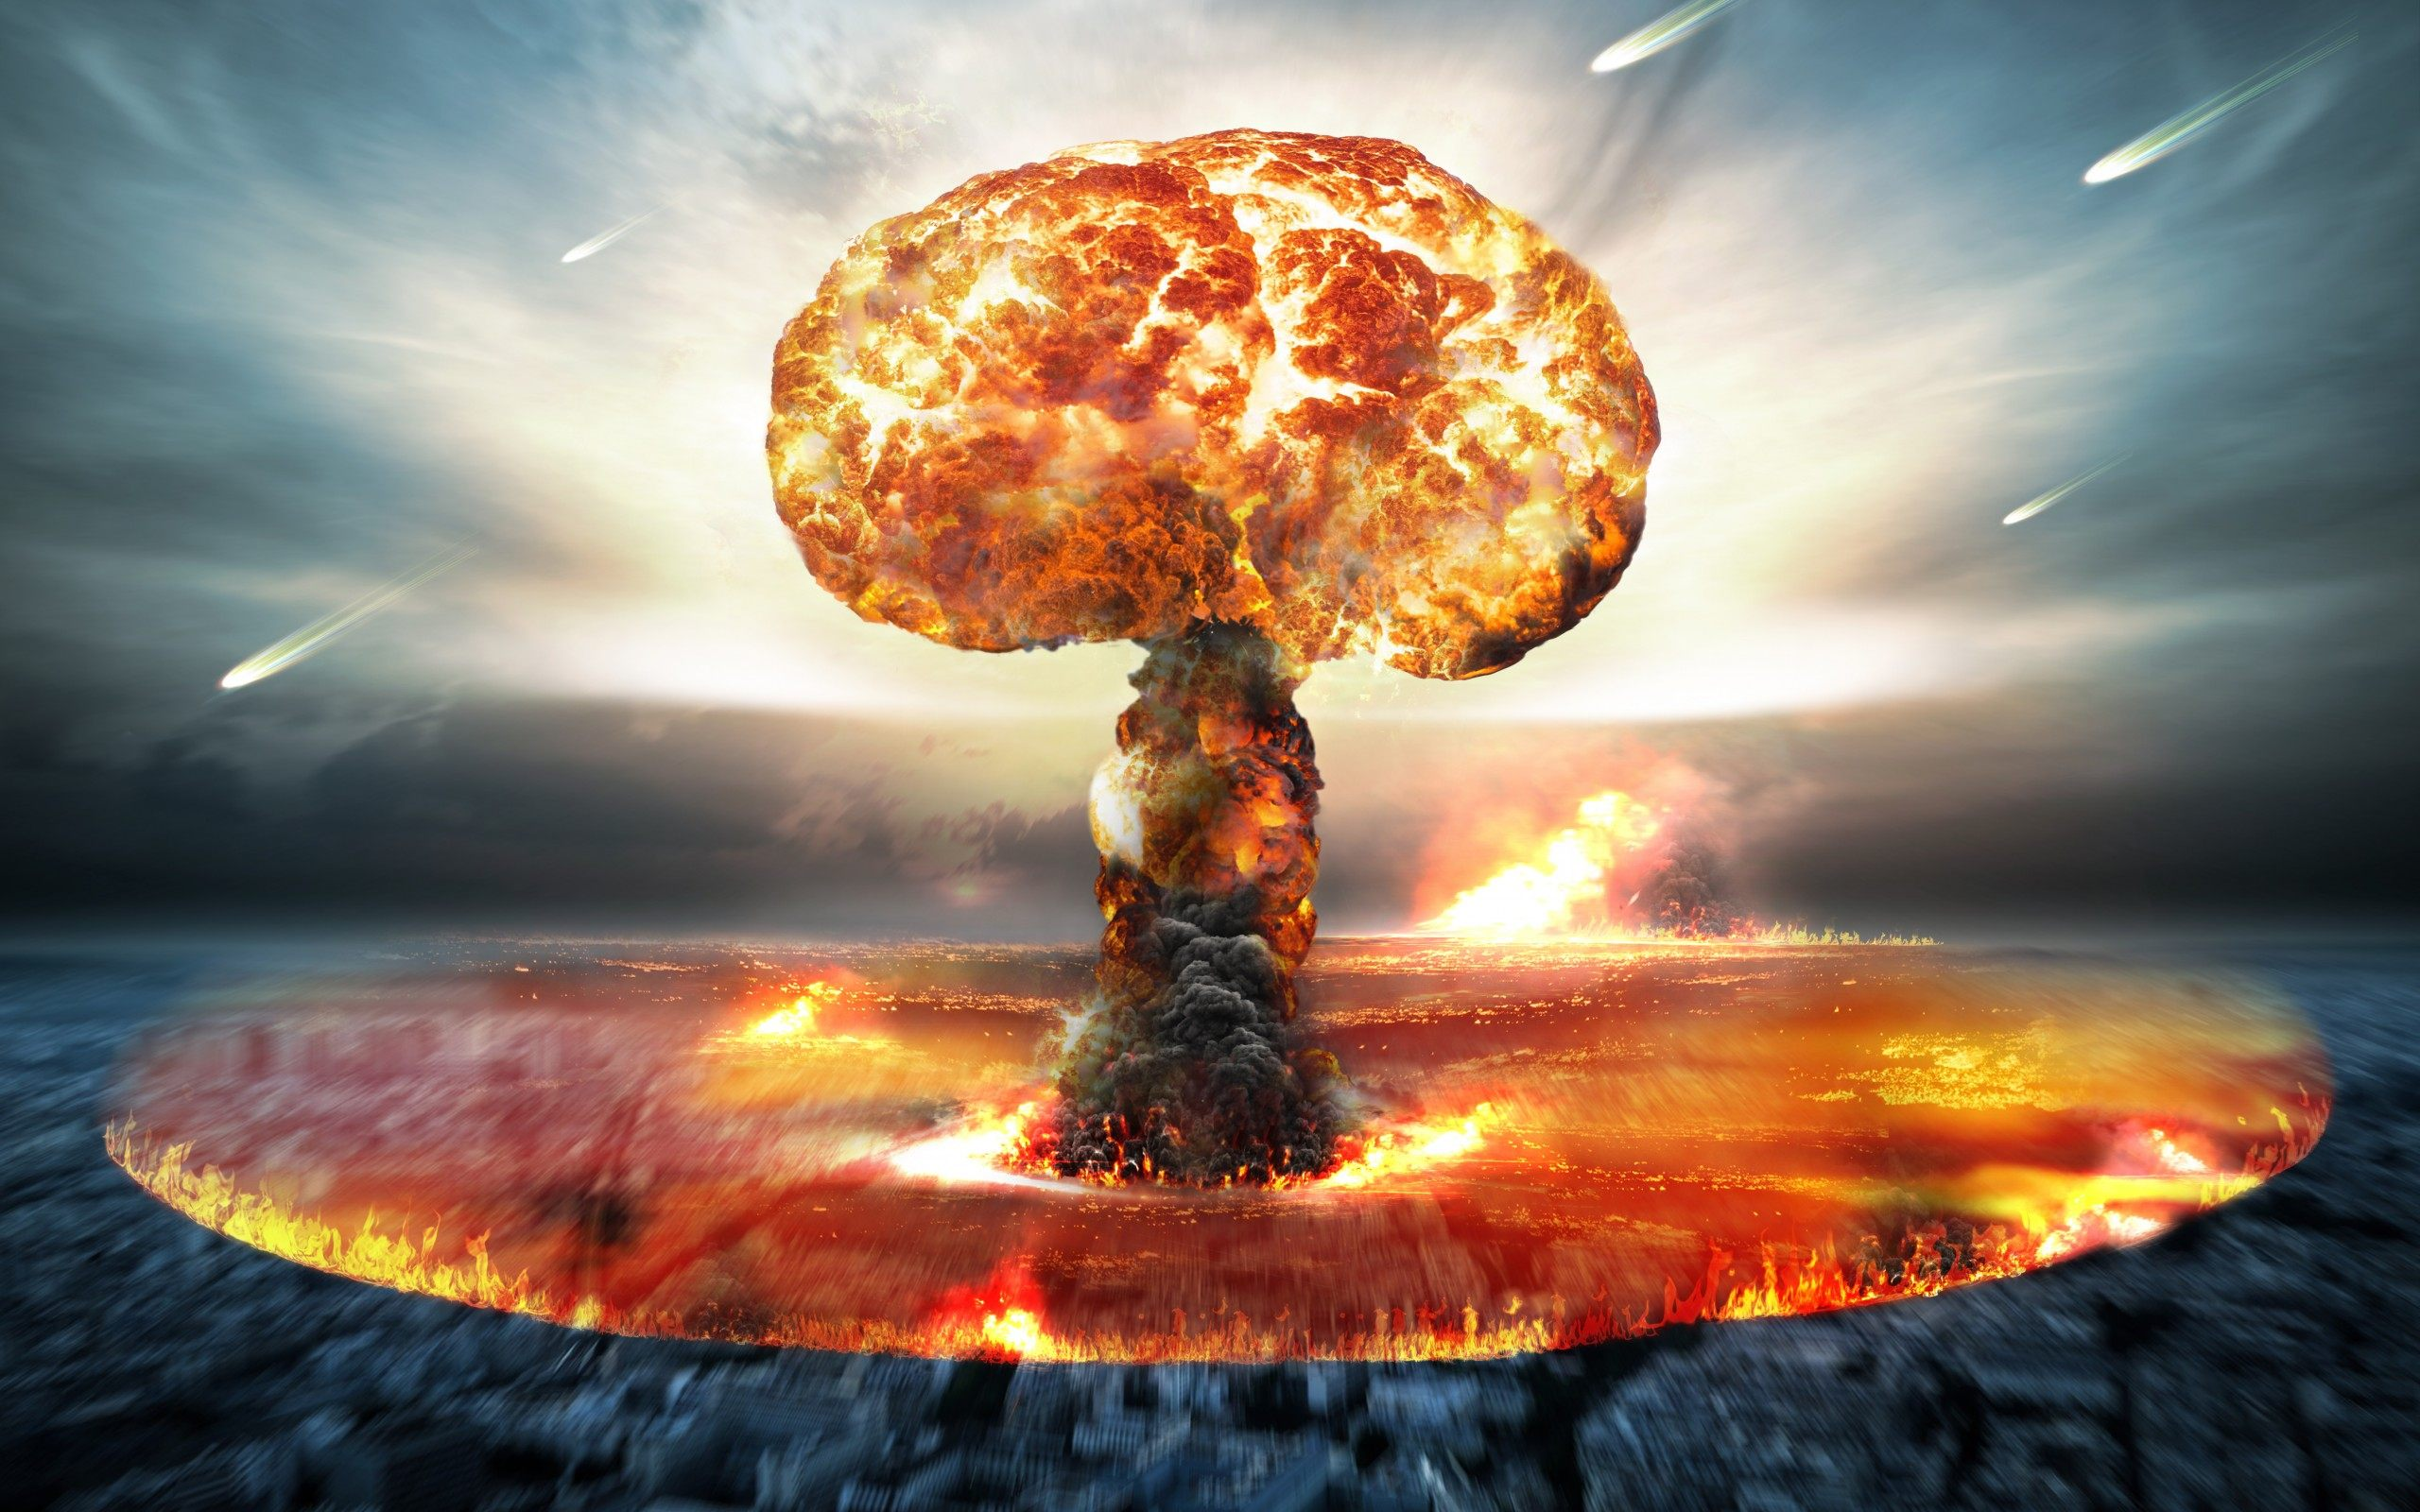 Nuclear Explosion Wallpapers - WallpaperSafari